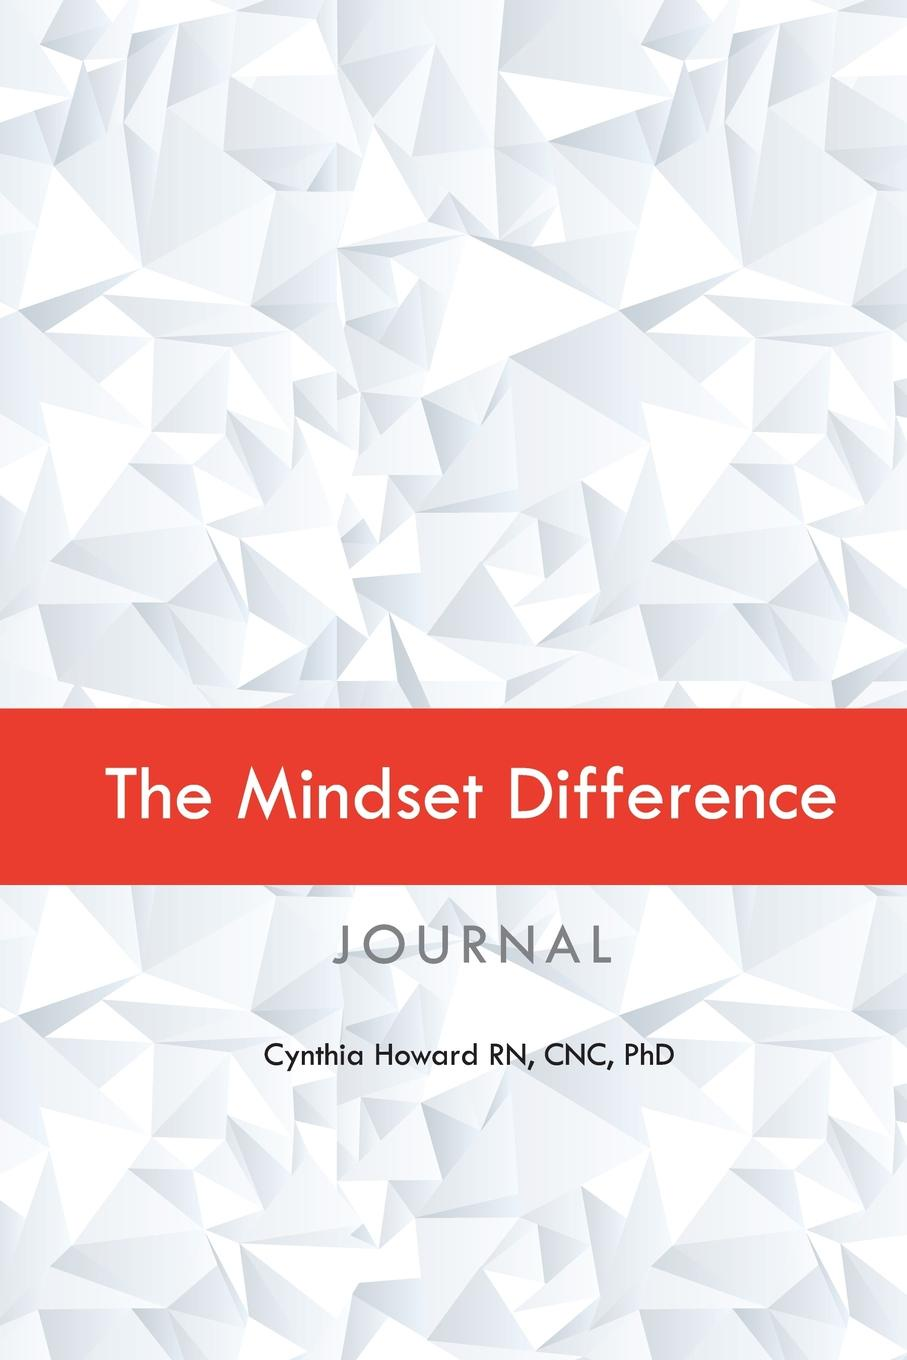 CNC PhD Howard RN The Mindset Difference Journal. The Resilient Leader Program cnc